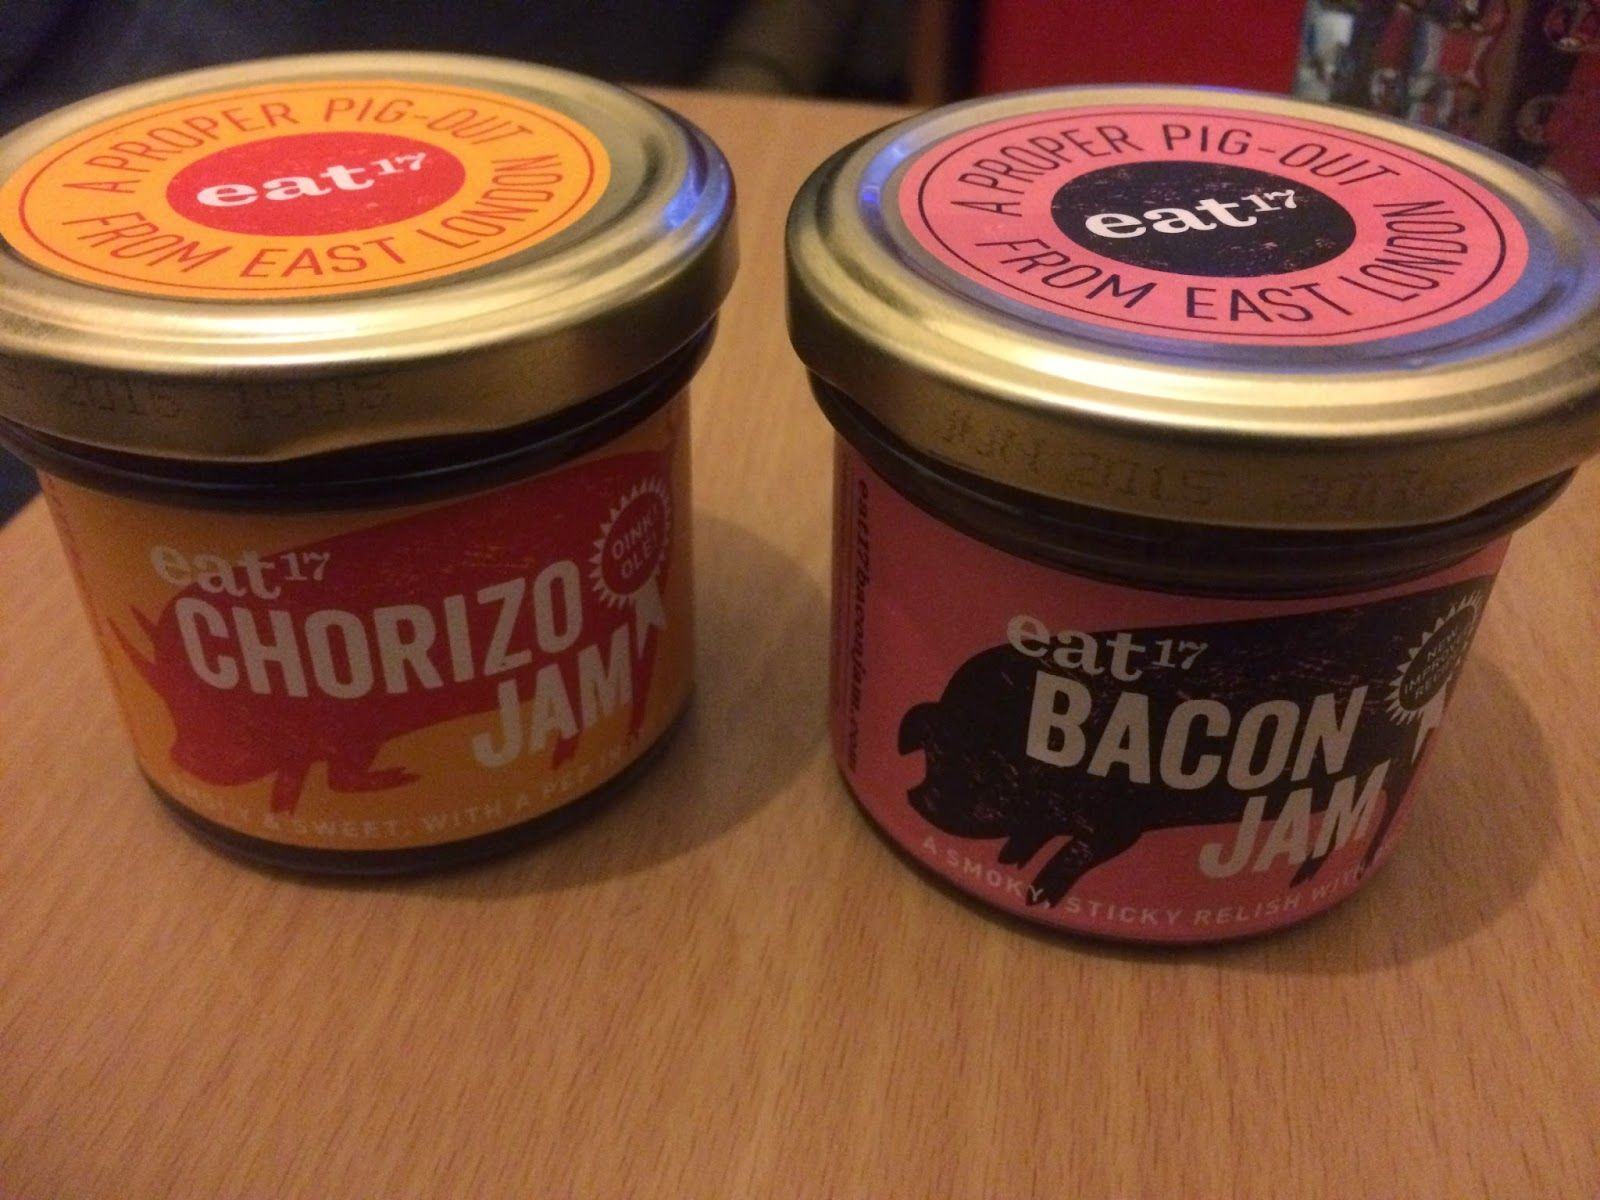 FOODSTUFF FINDS: Bacon Jam (yes - really) & Chorizo Jam @EAT_17 [by @NLi10]